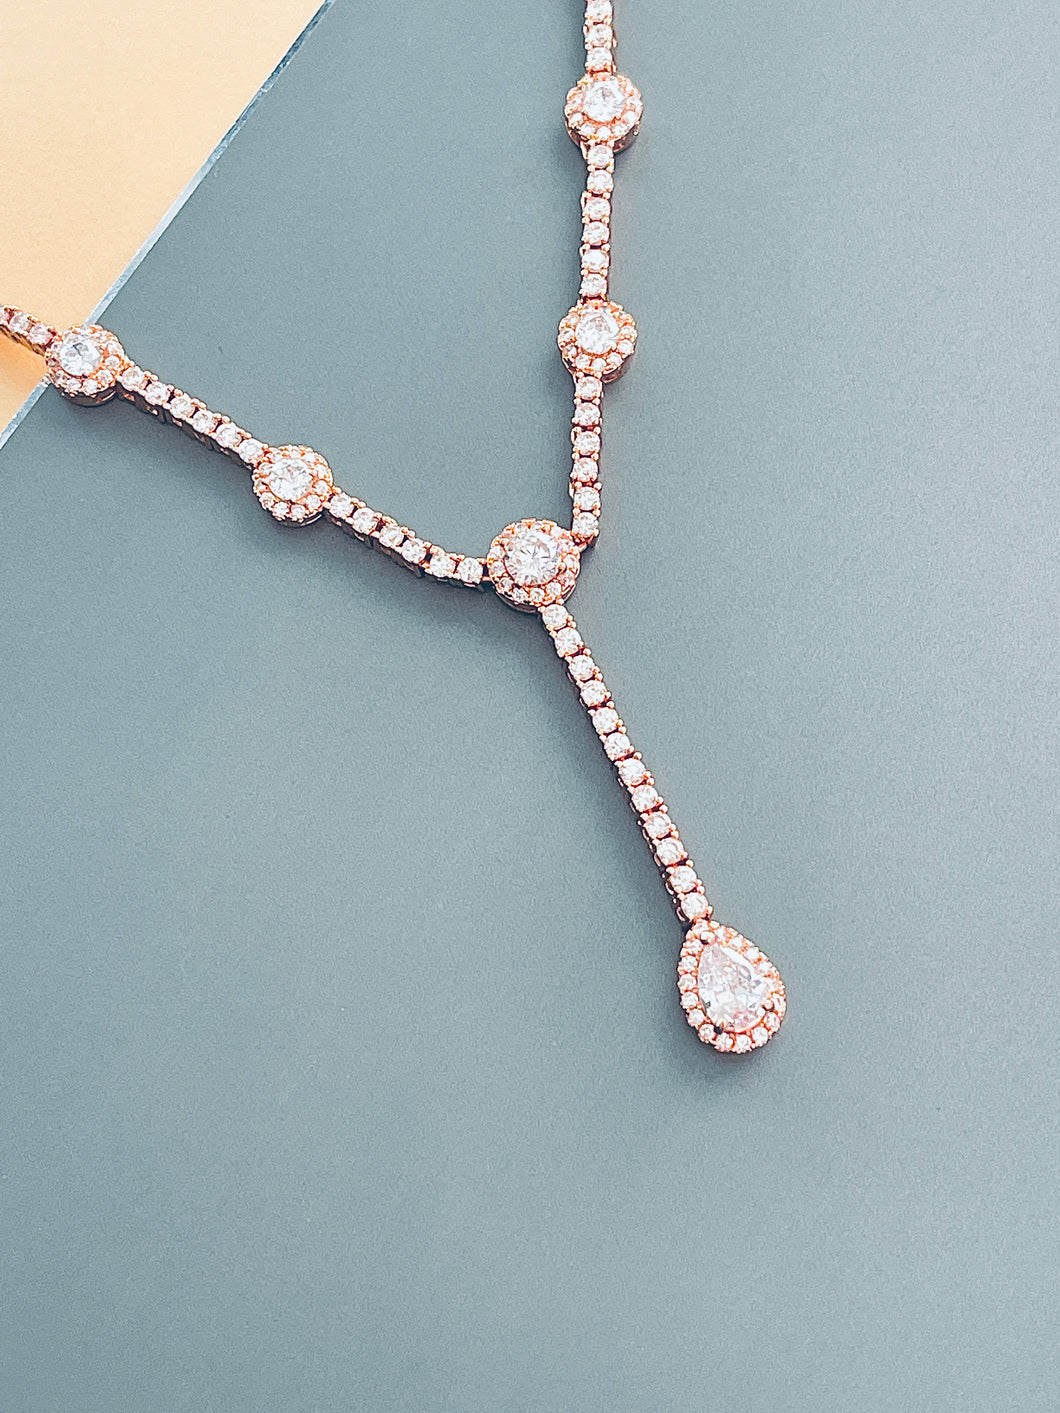 MELODY - Elegant CZ With Teardrop Stones Necklace In Rose Gold